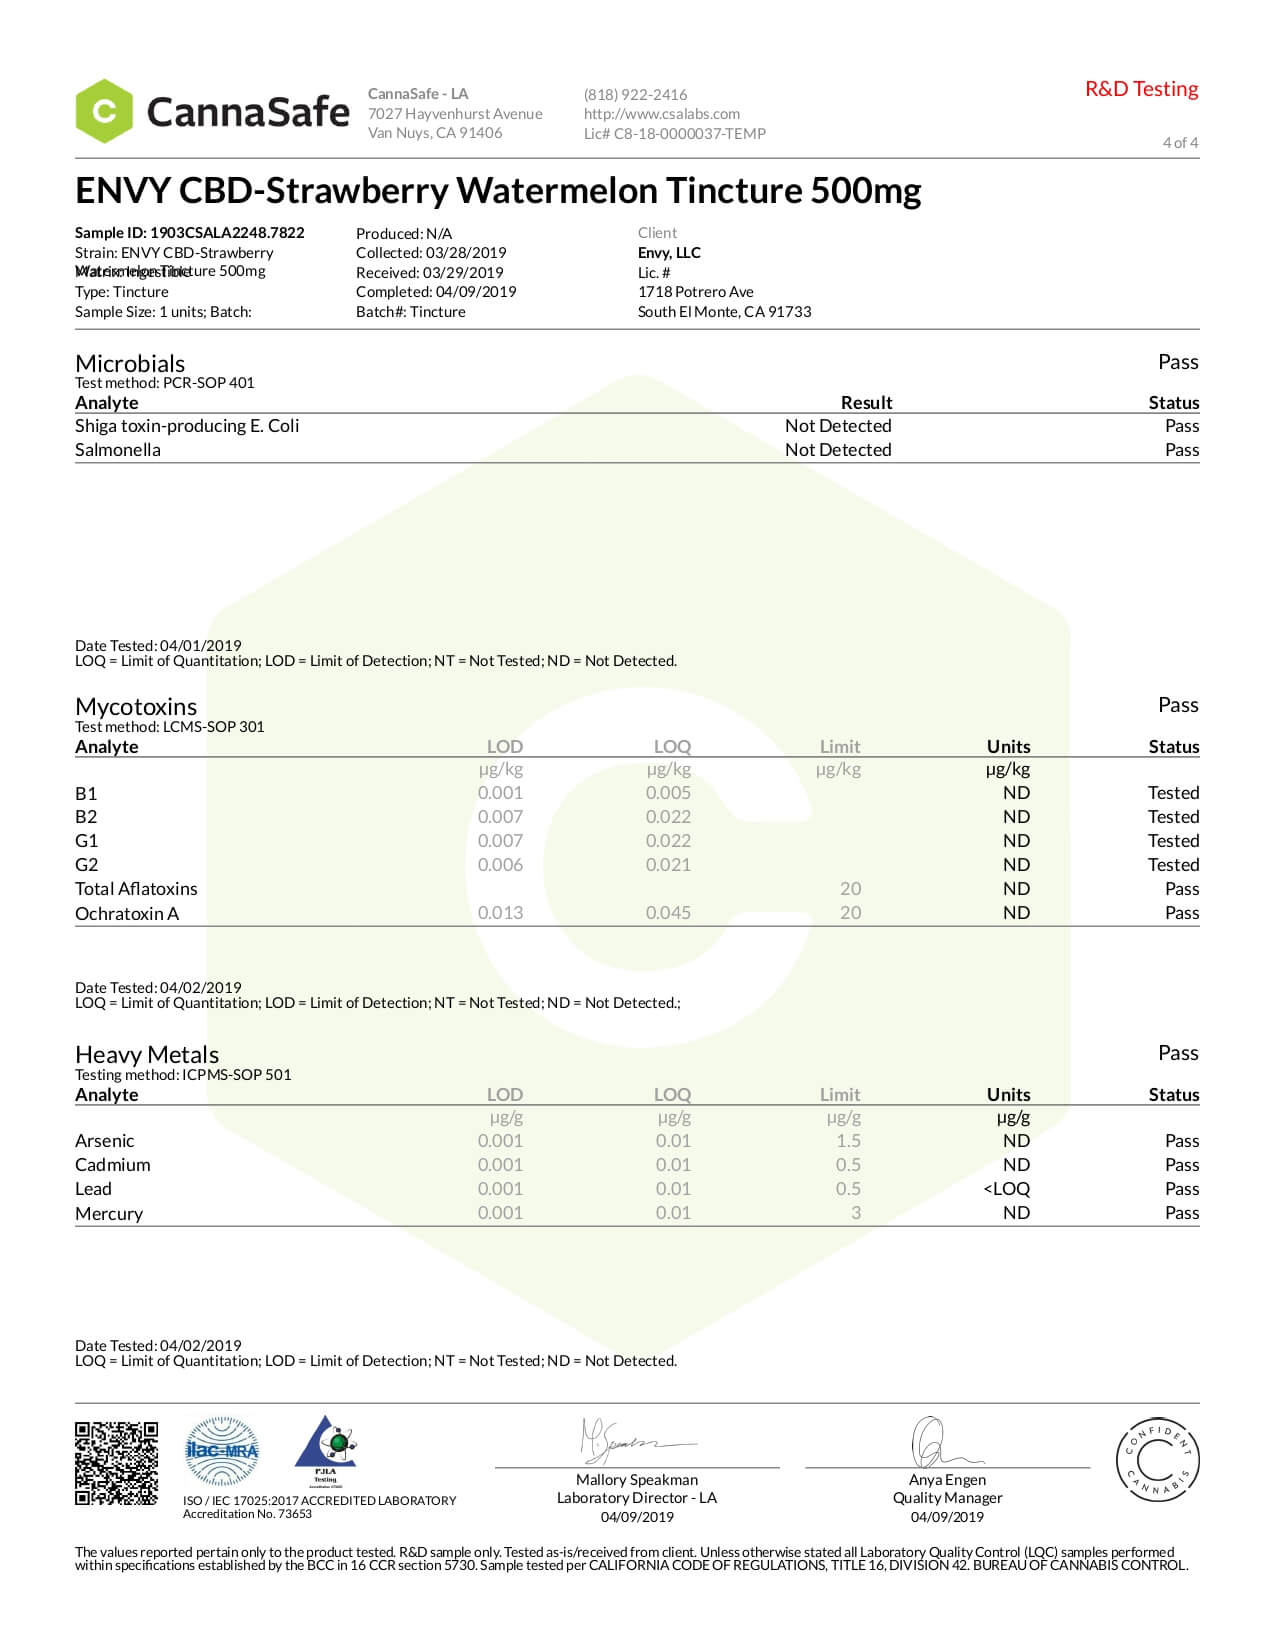 ENVY CBD Tincture Strawberry Watermelon 500mg Lab Report